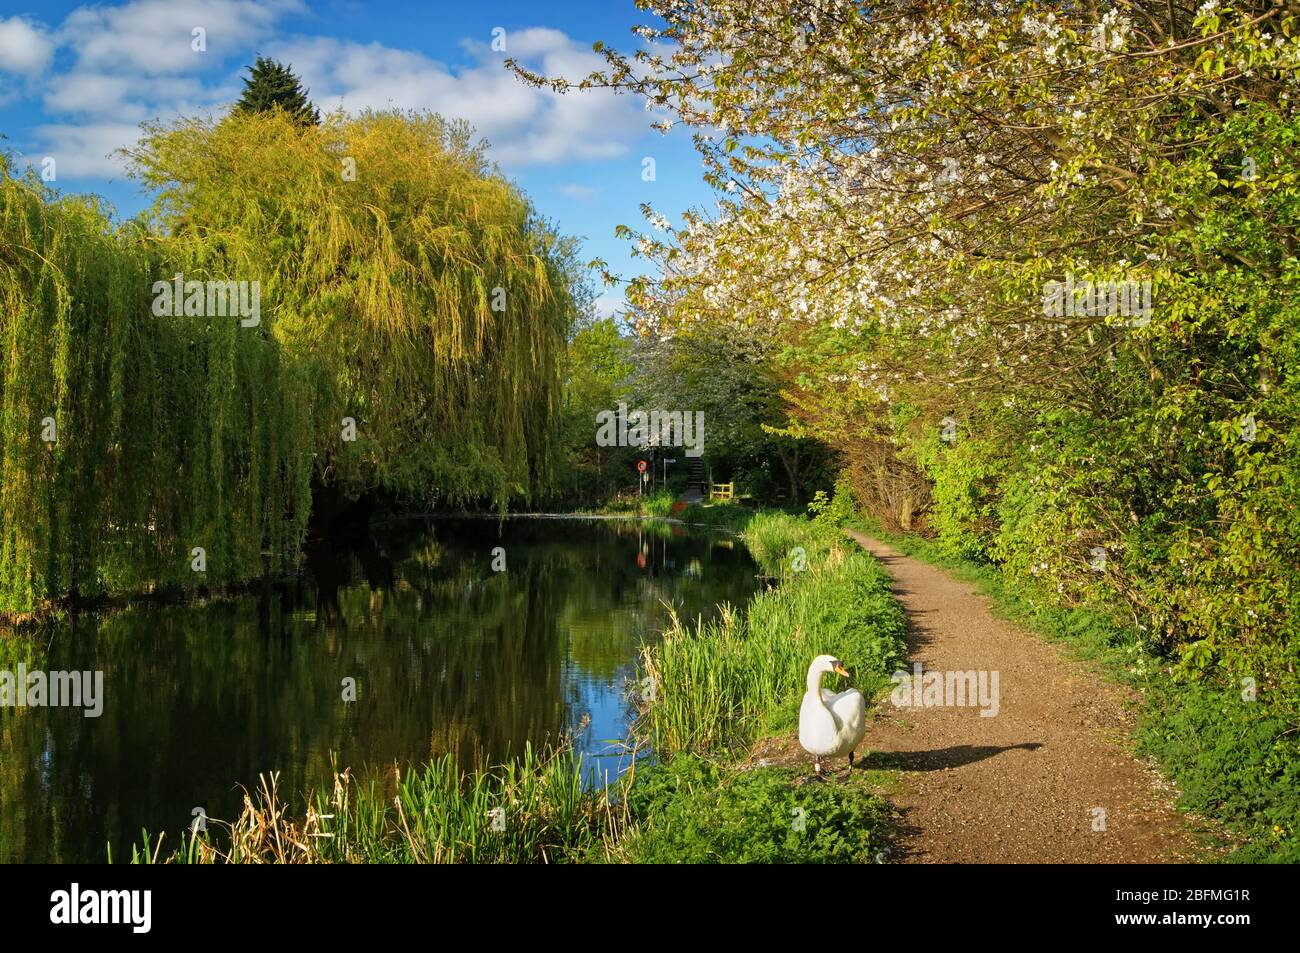 UK,South Yorkshire,Barnsley,Elsecar Canal,Swan and Footpath with Blossom and Weeping Willows in full bloom Stock Photo